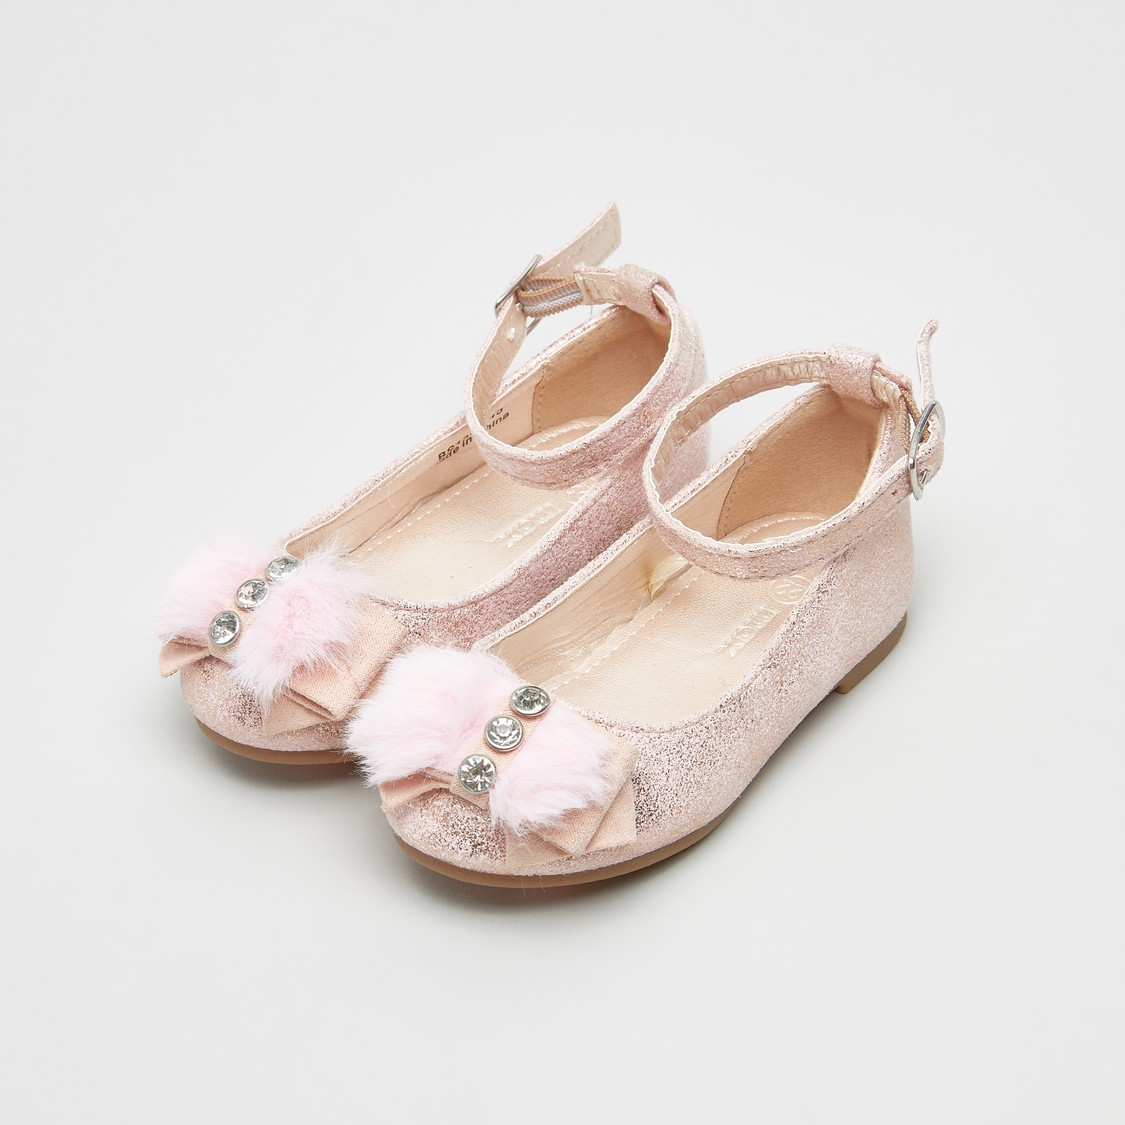 Textured Mary Jane Shoes with Bow Applique Detail